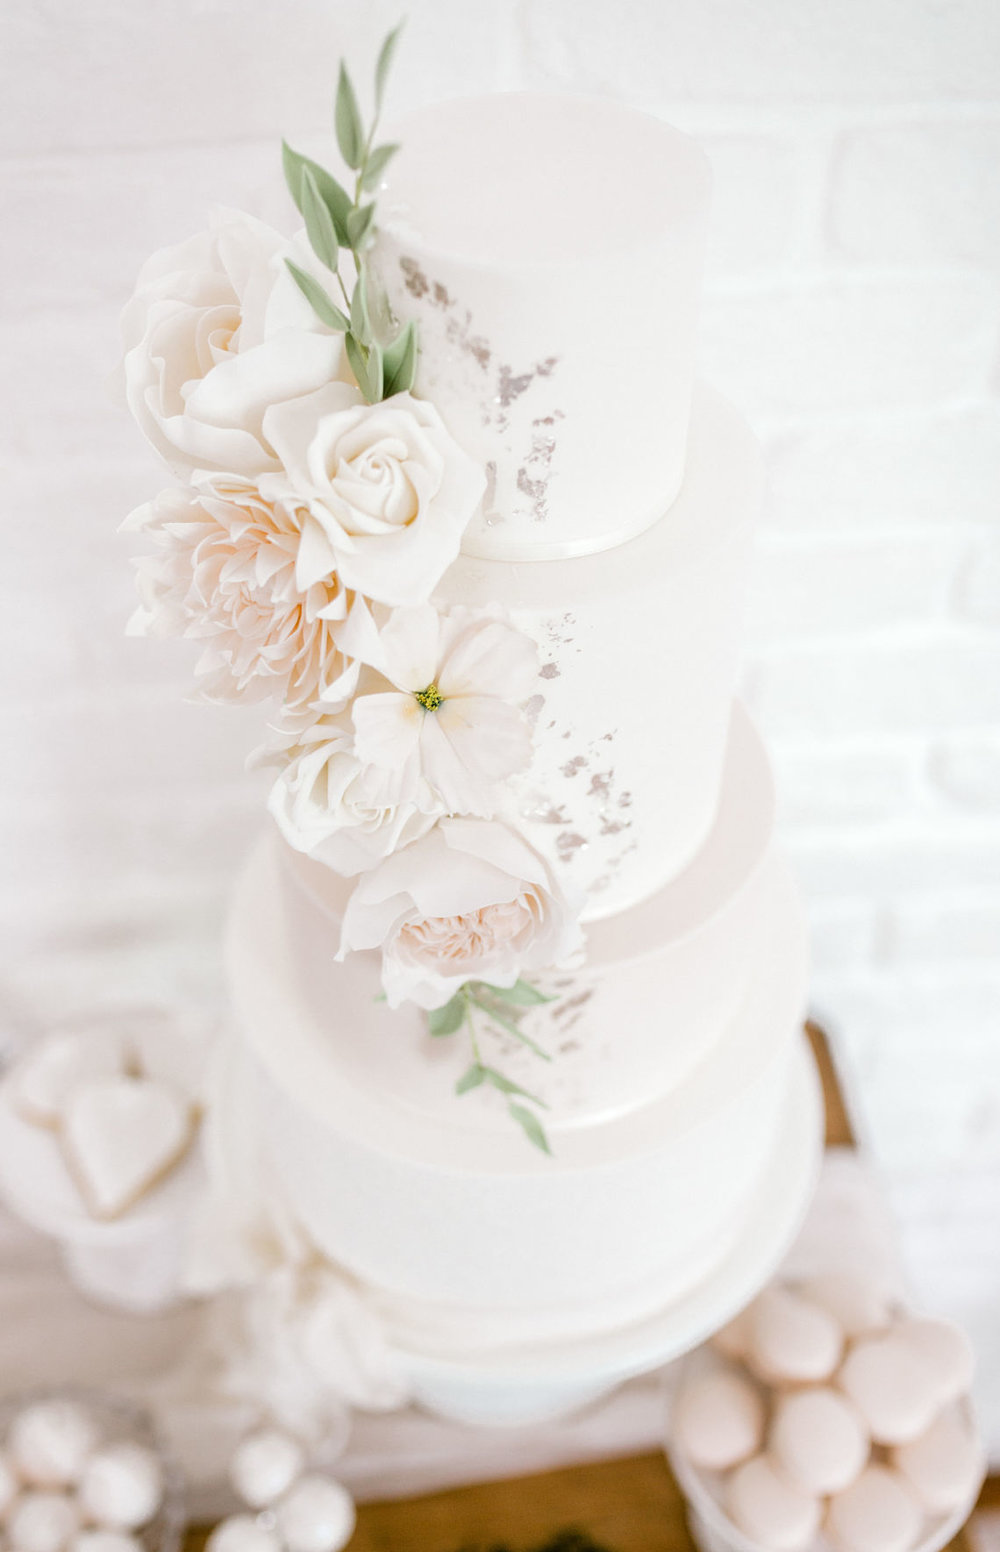 wedding-cake-sugar-flowers-blush-neutral-Essex-wedding-planner